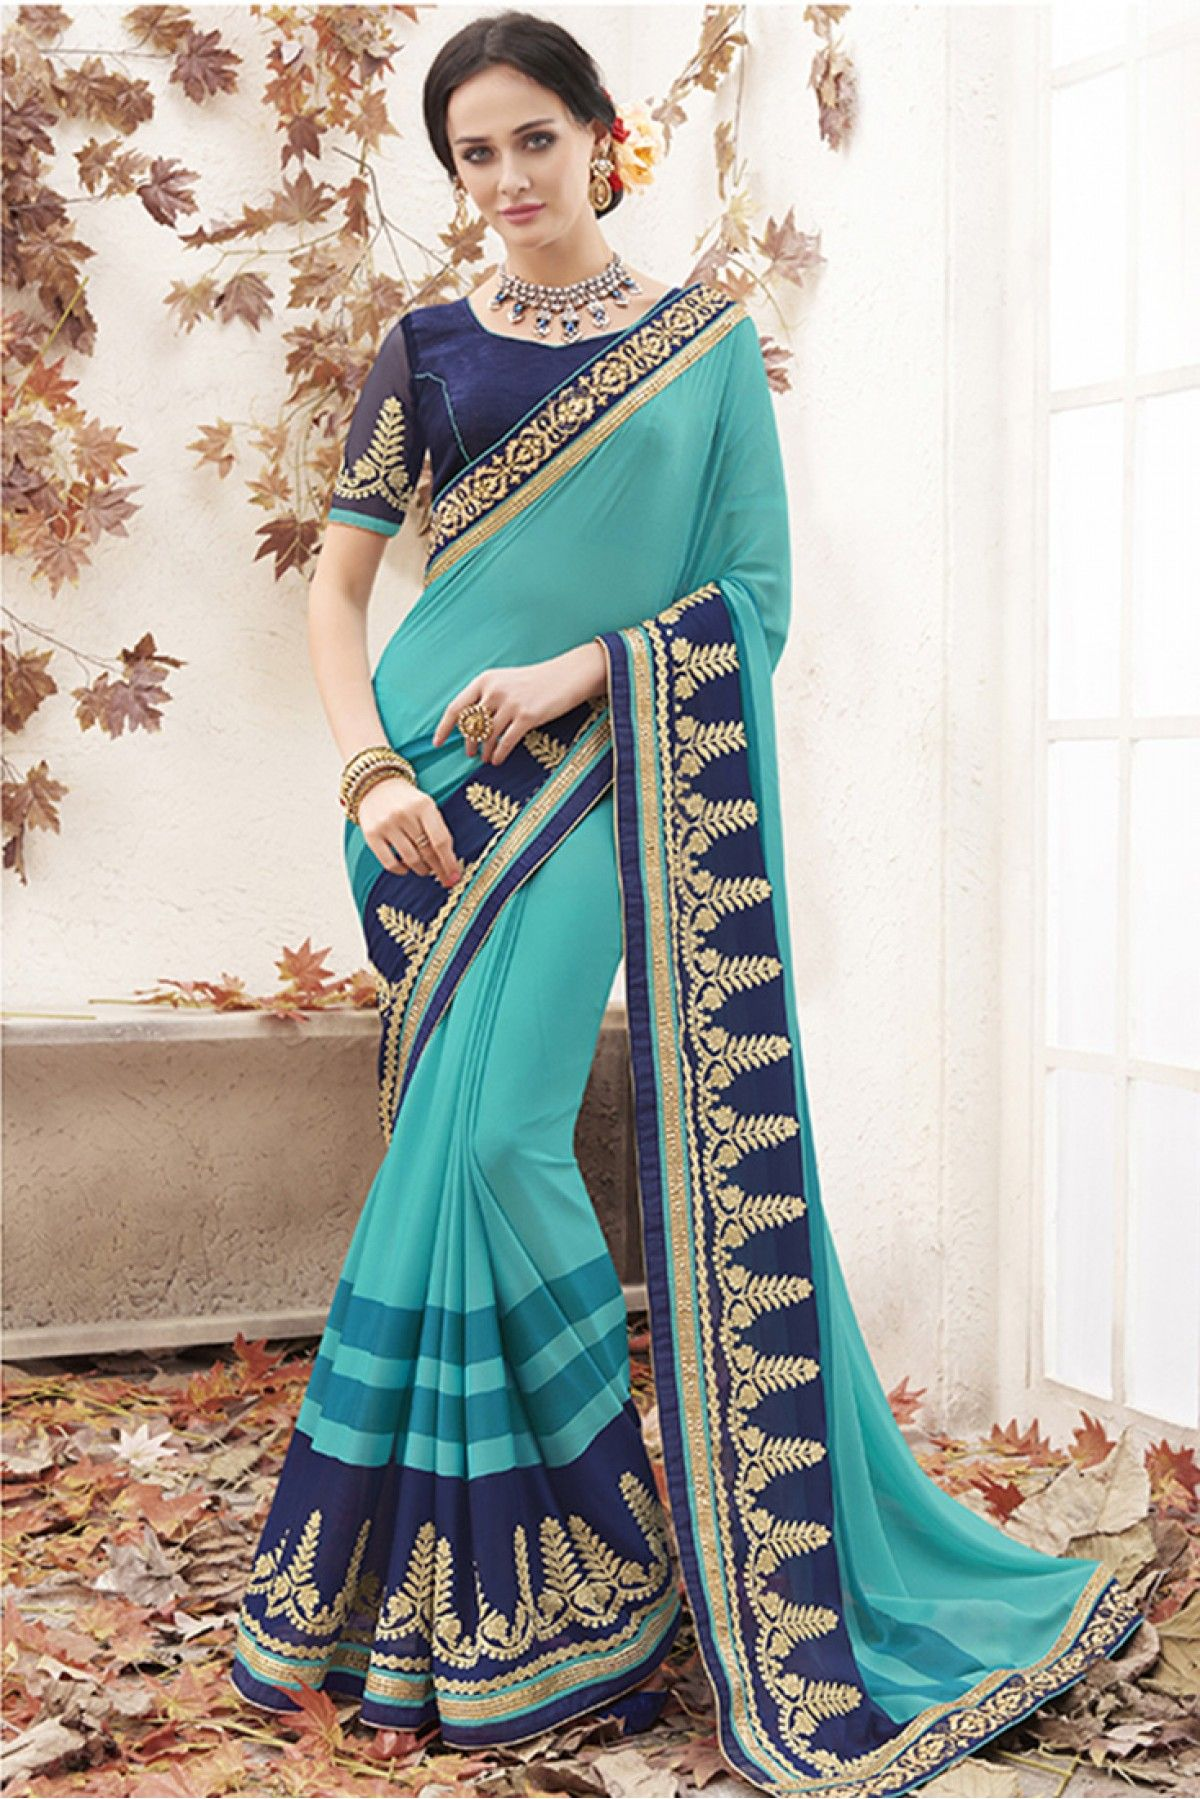 0757d28b5e Sky Blue Colour Georgette Fabric Party Wear Designer Saree Comes With  Matching Blouse. This Saree Is Crafted With Lace Work.